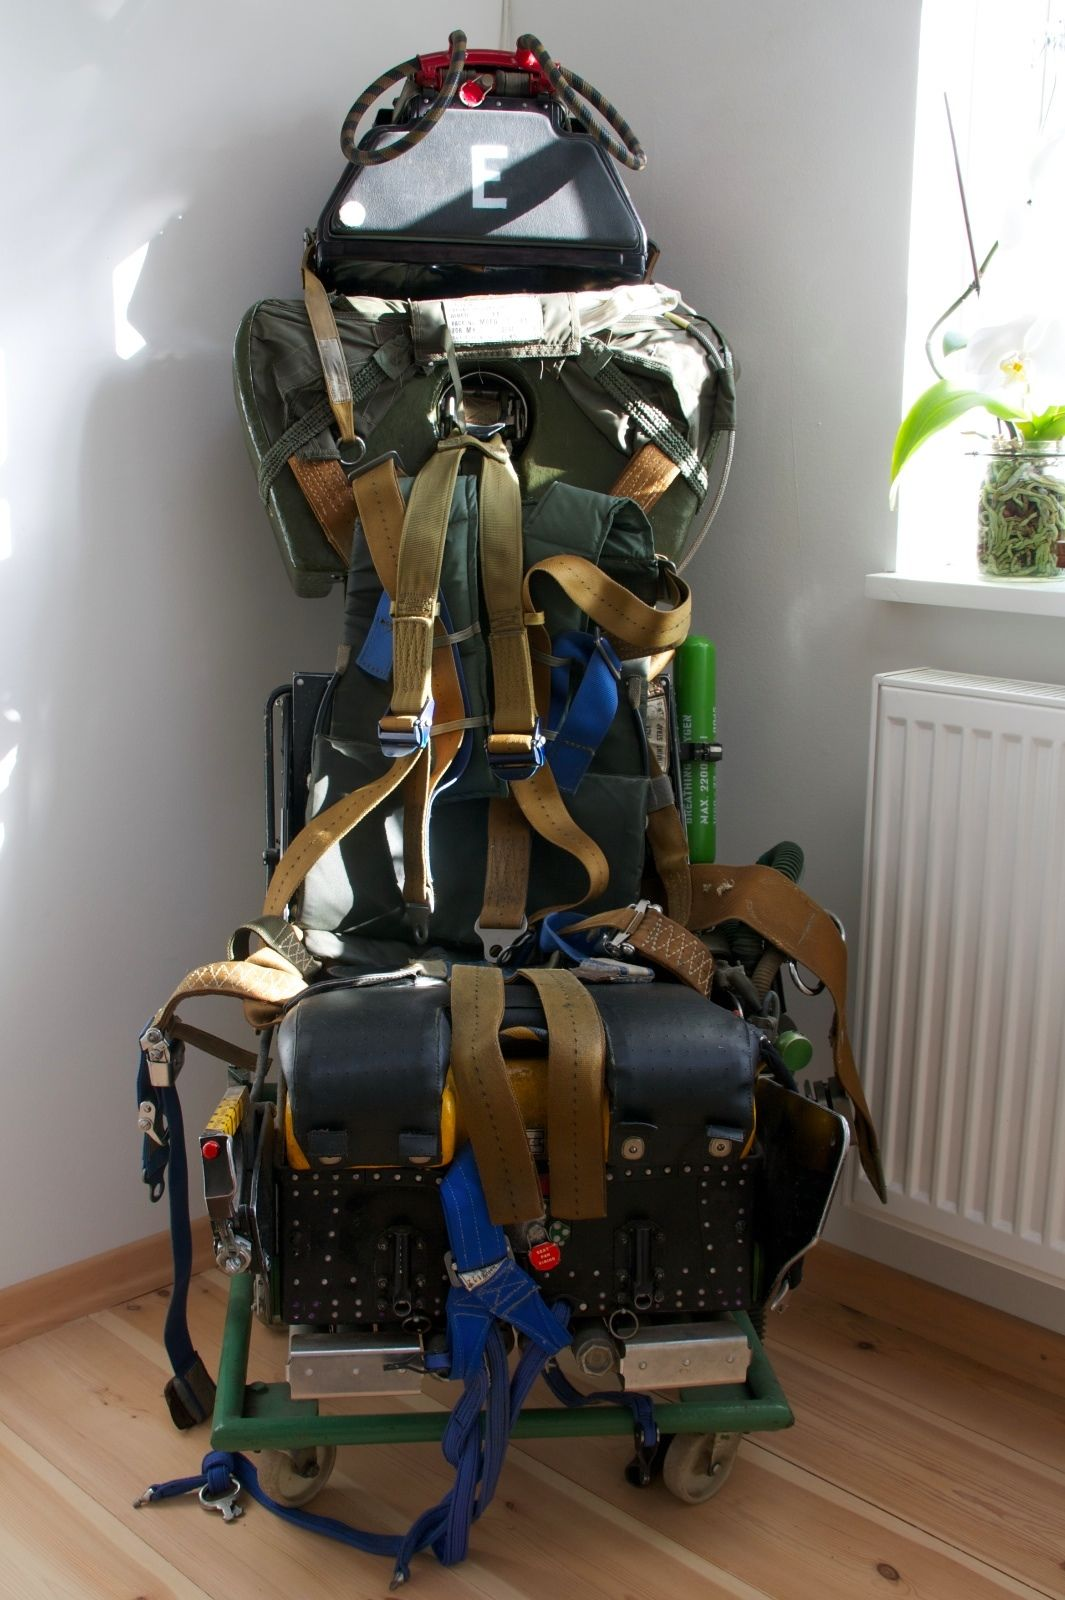 Aircraft Seats: Airplane Ejection Seats For Your Home Flight Simulation